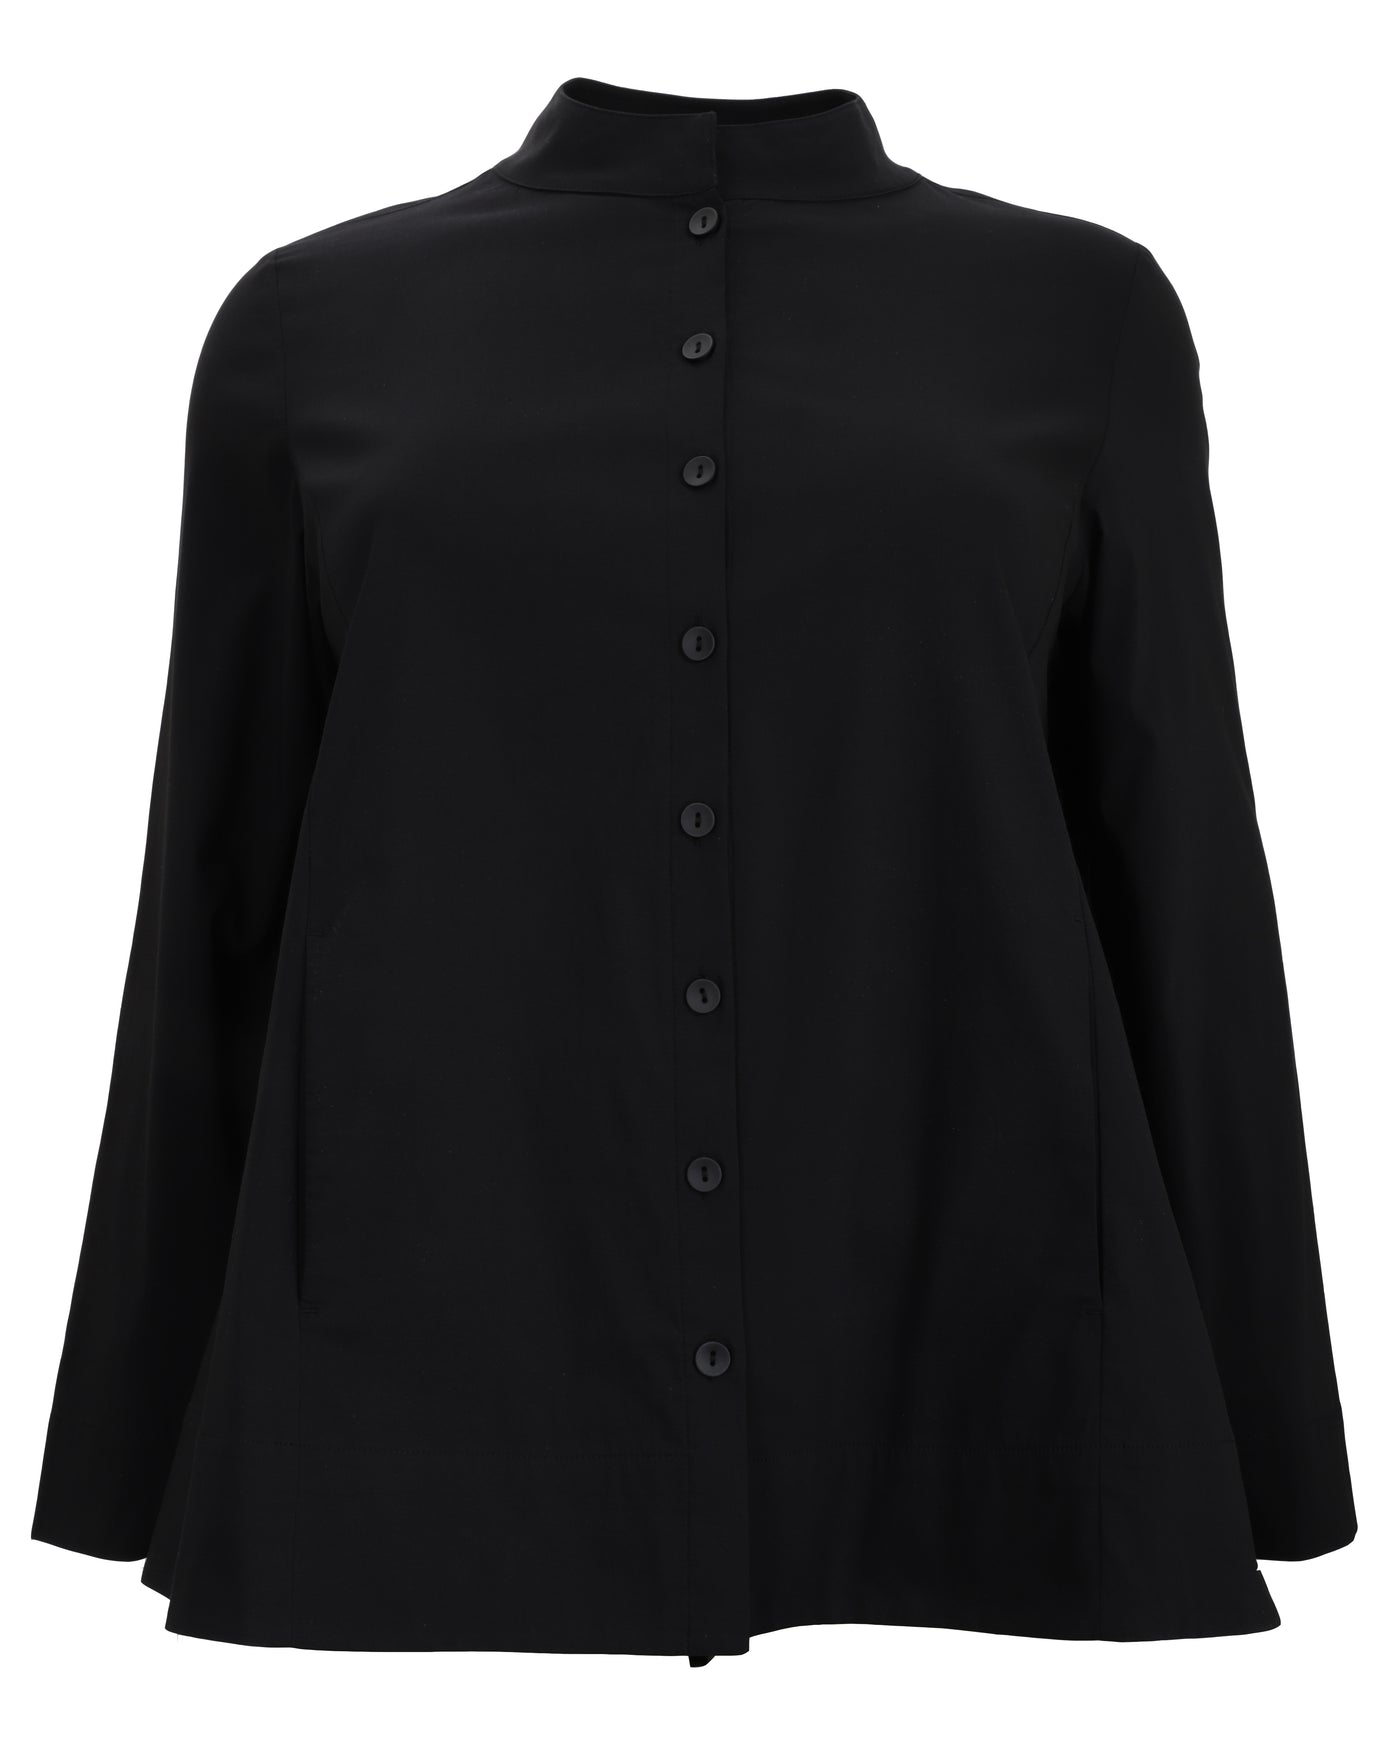 toni T by Toni Plus Stand Collar Jacket with High/Low Hem in Black